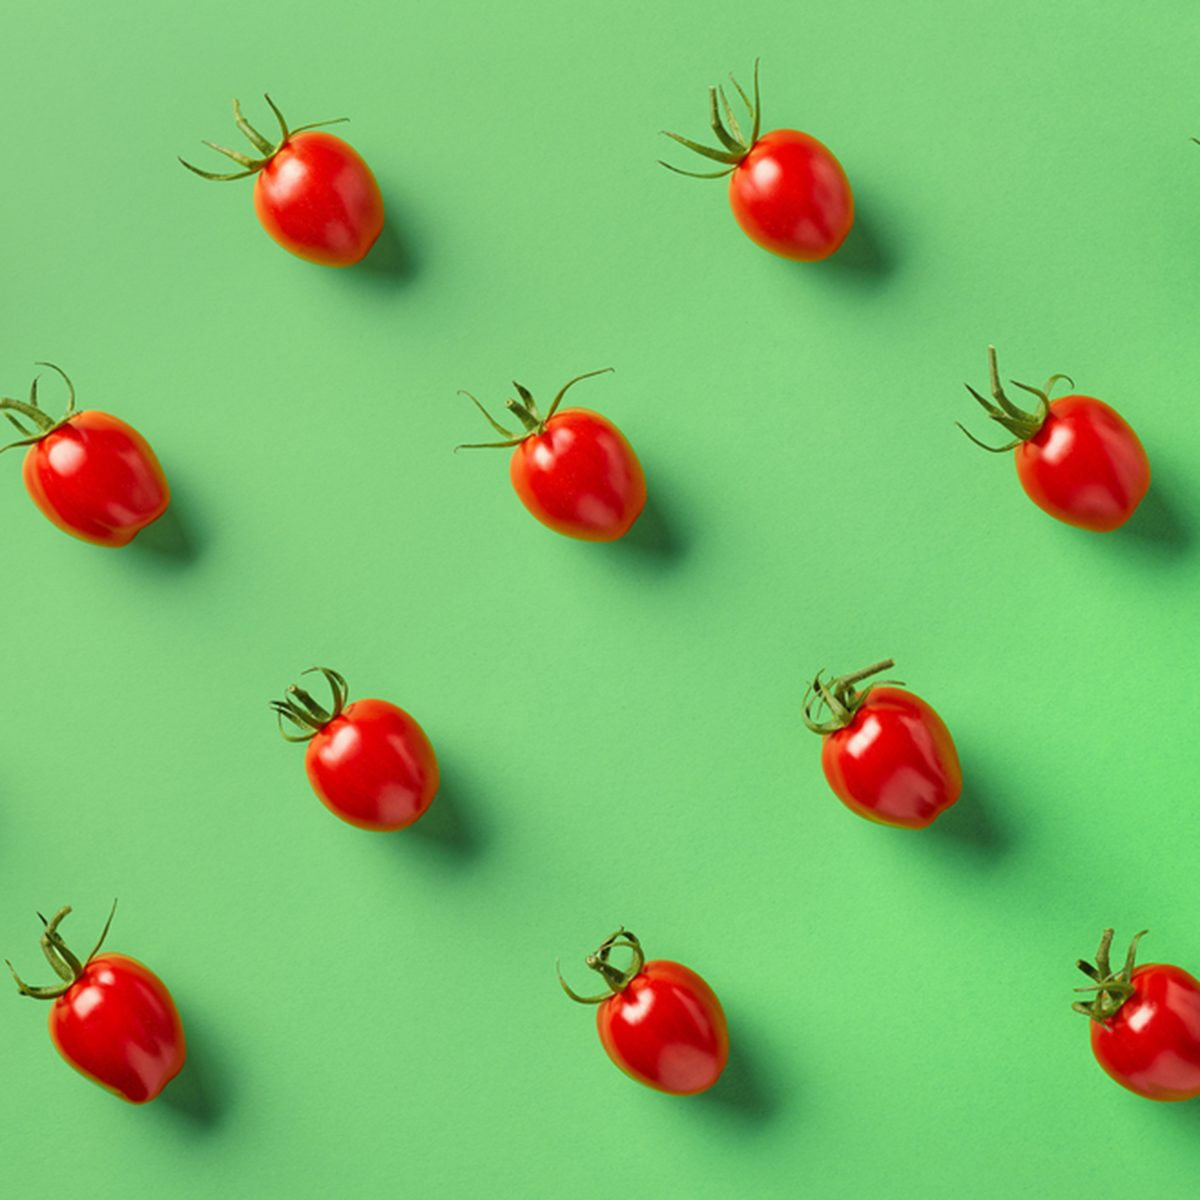 Colorful pattern of red tomatos on green background.